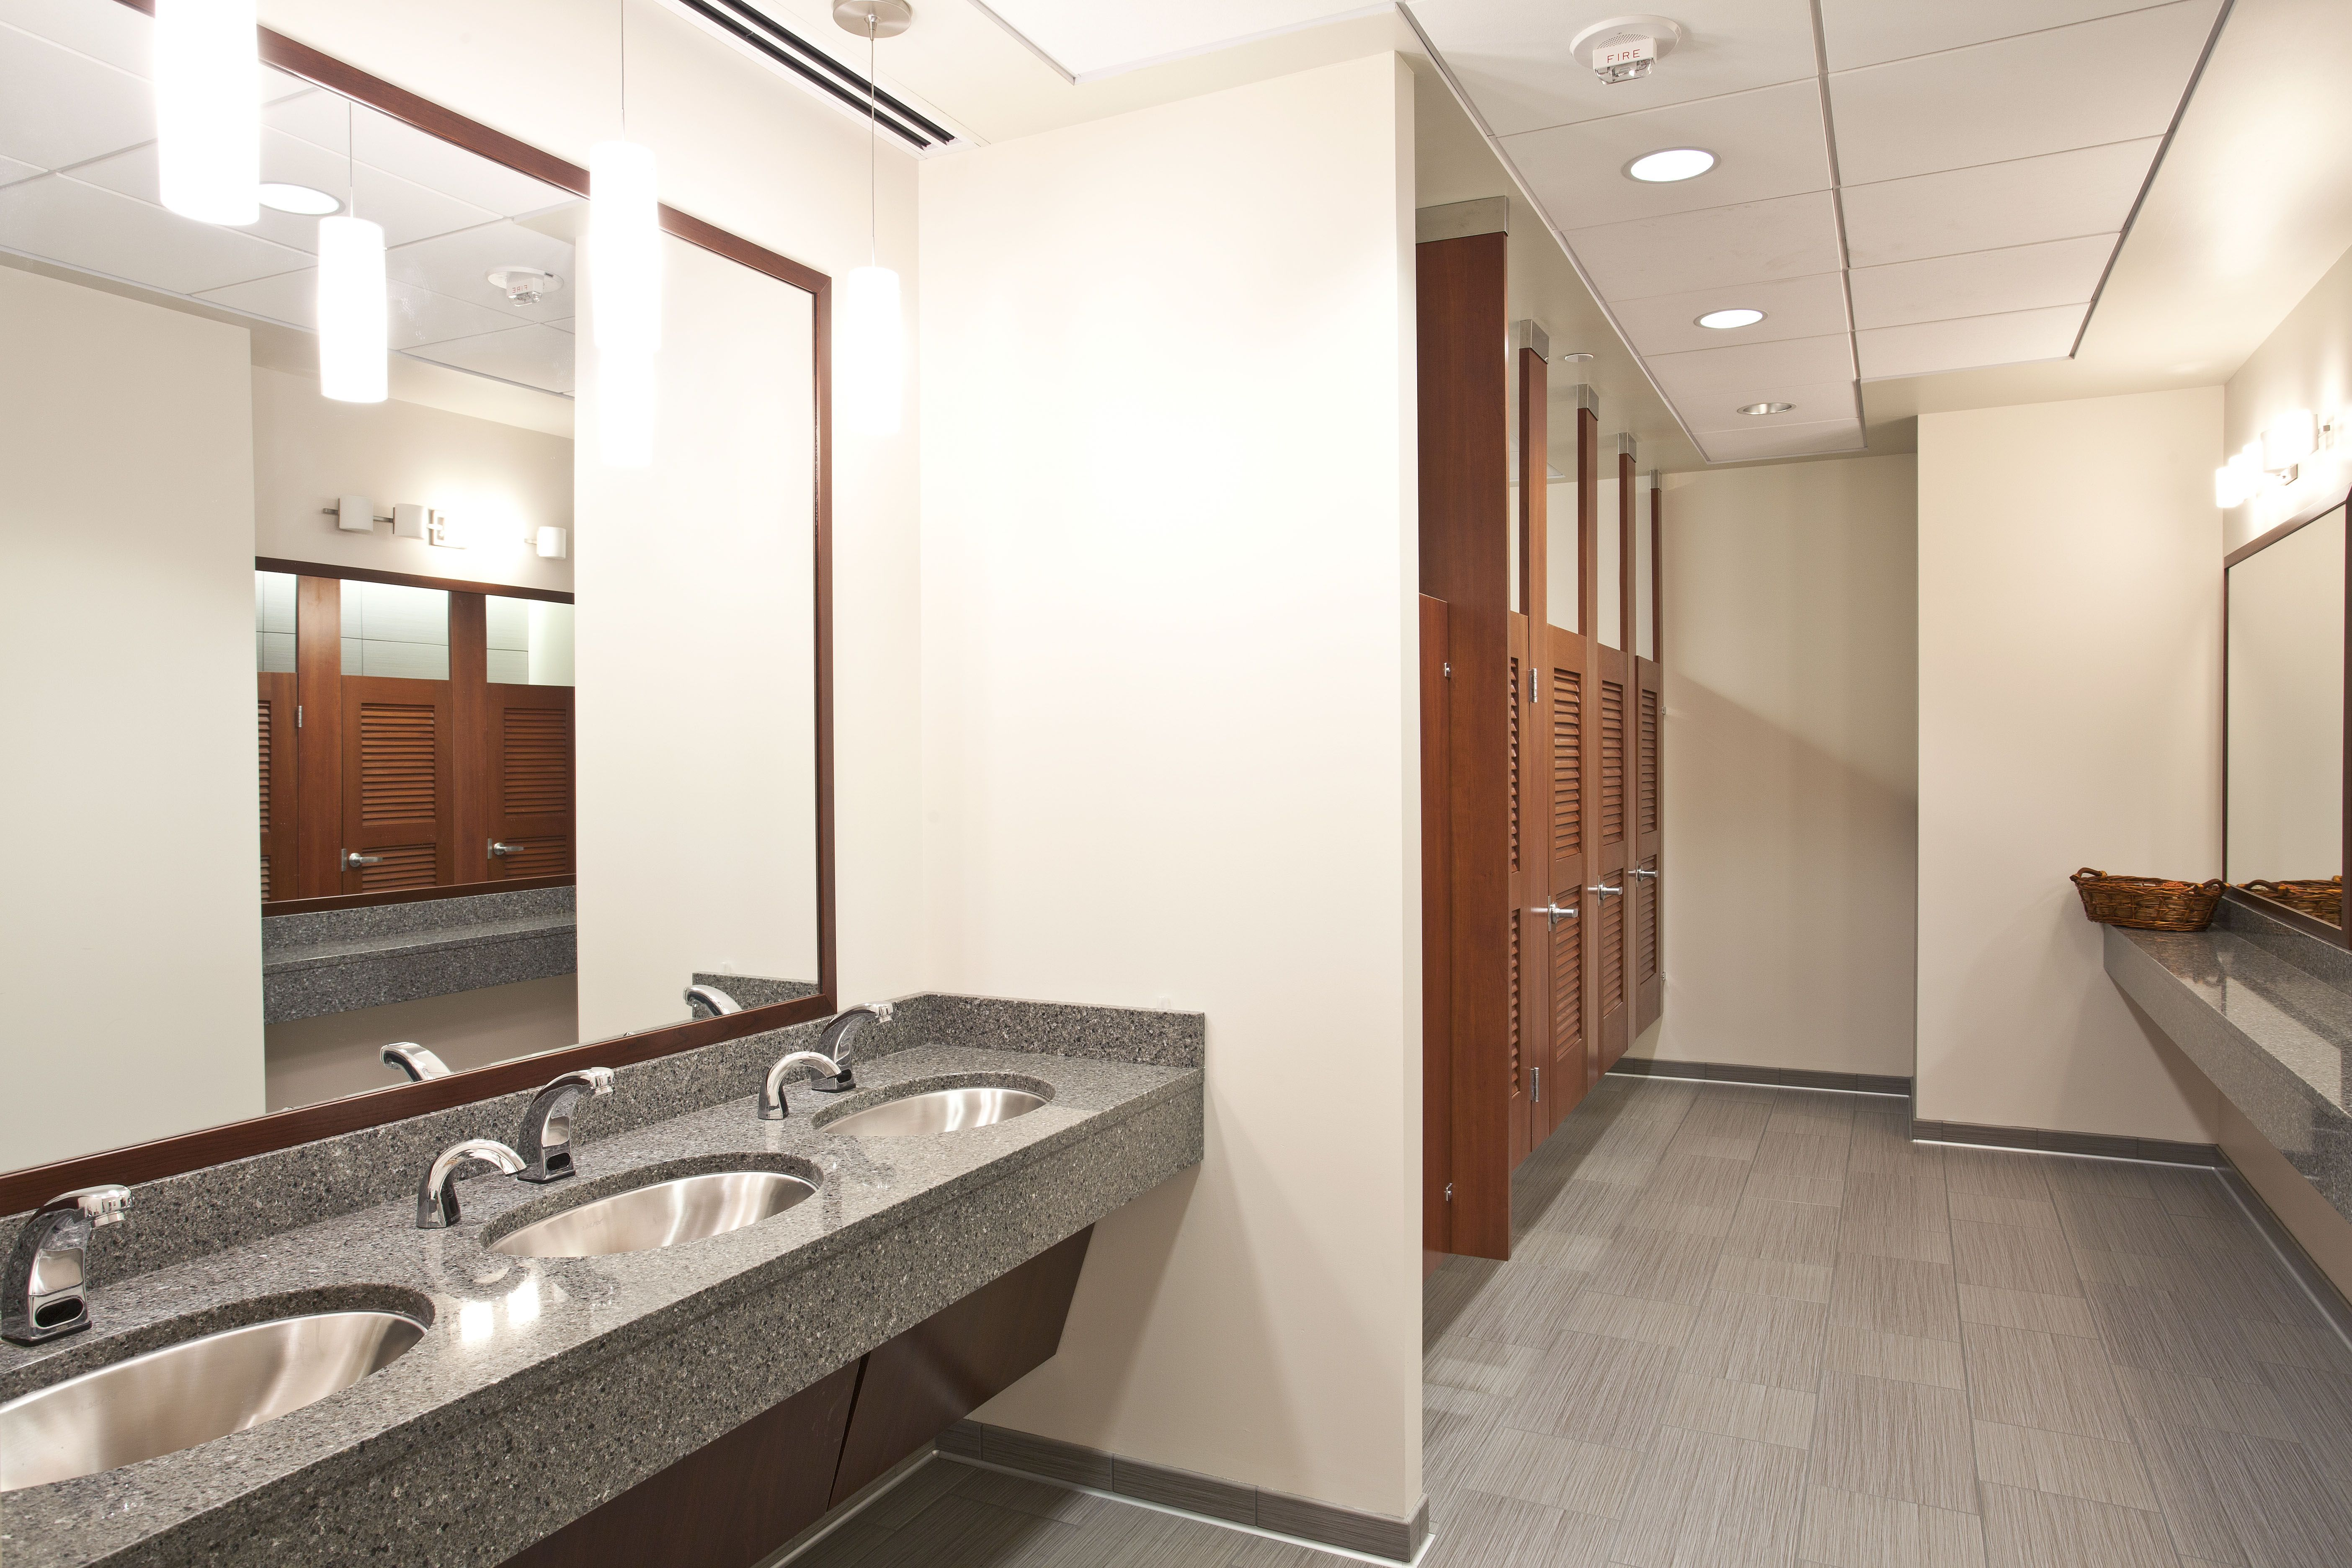 Commercial Bathroom Partitions Interior 1 ppg place restroom | pittsburgh, pa | pinterest